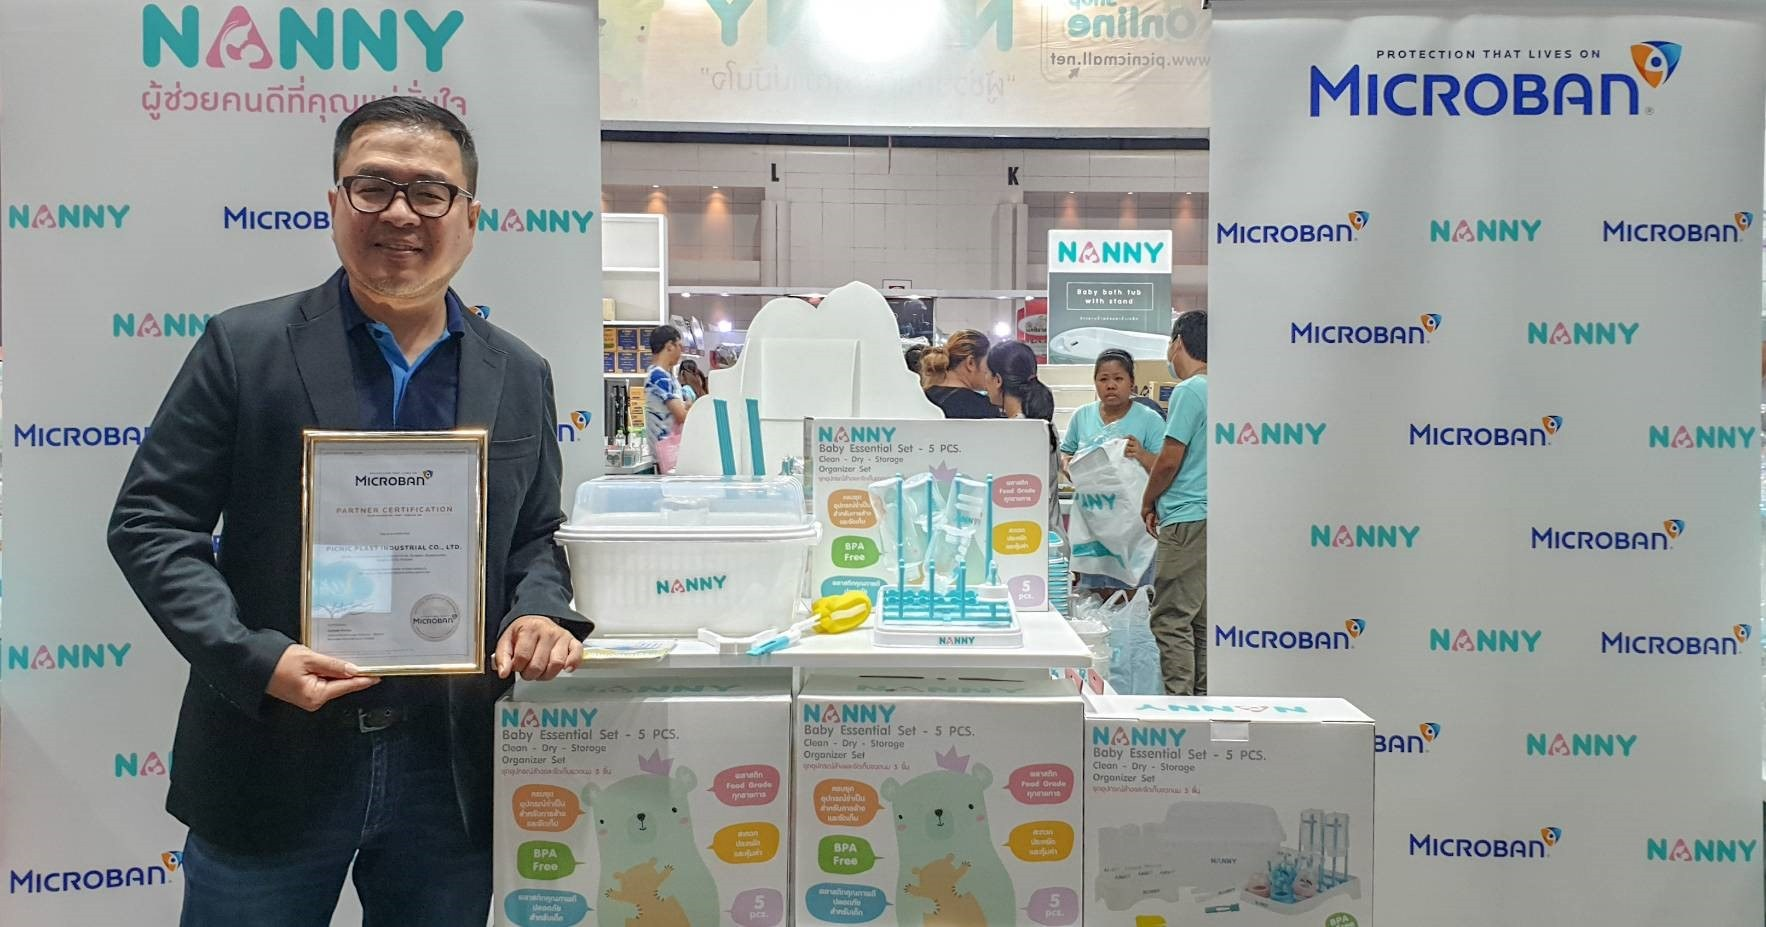 Mbns18 Nanny Certificate Presentation For Antibacterial Baby Products